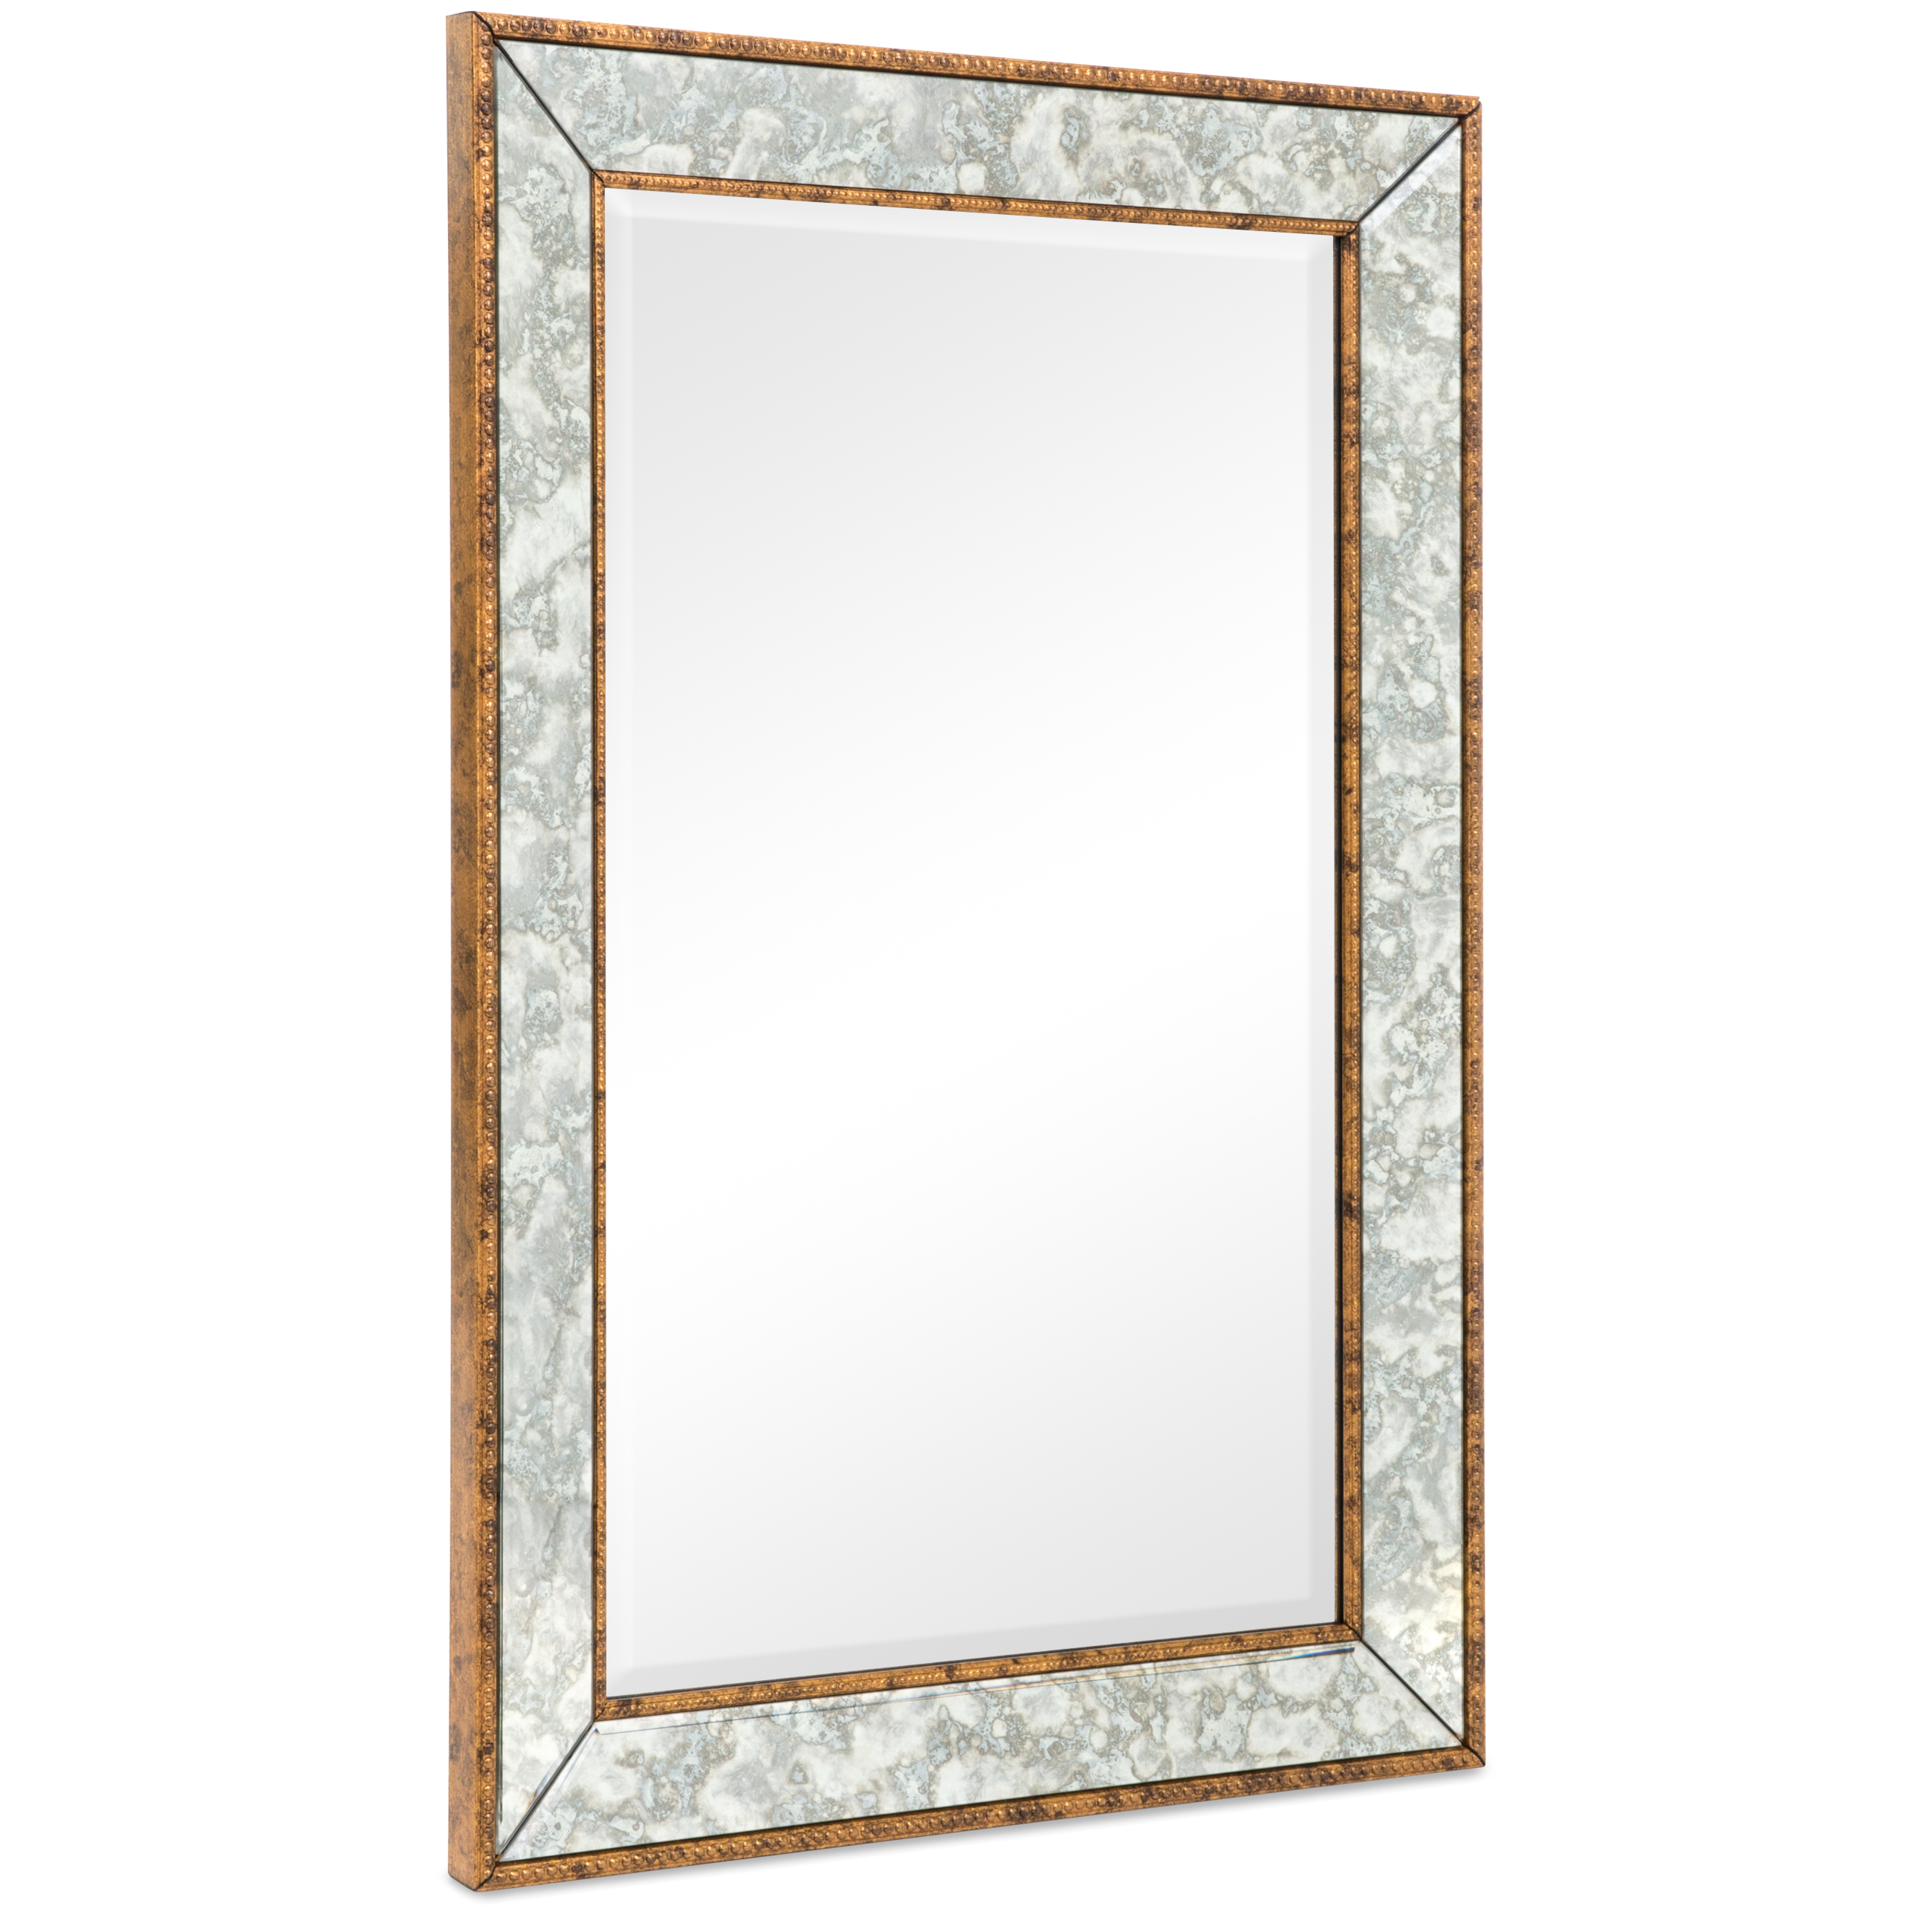 """Best Choice Products 36""""x24"""" Rectangular Bedroom Bathroom Entryway Decorative Wall Mirror (Brown)"""